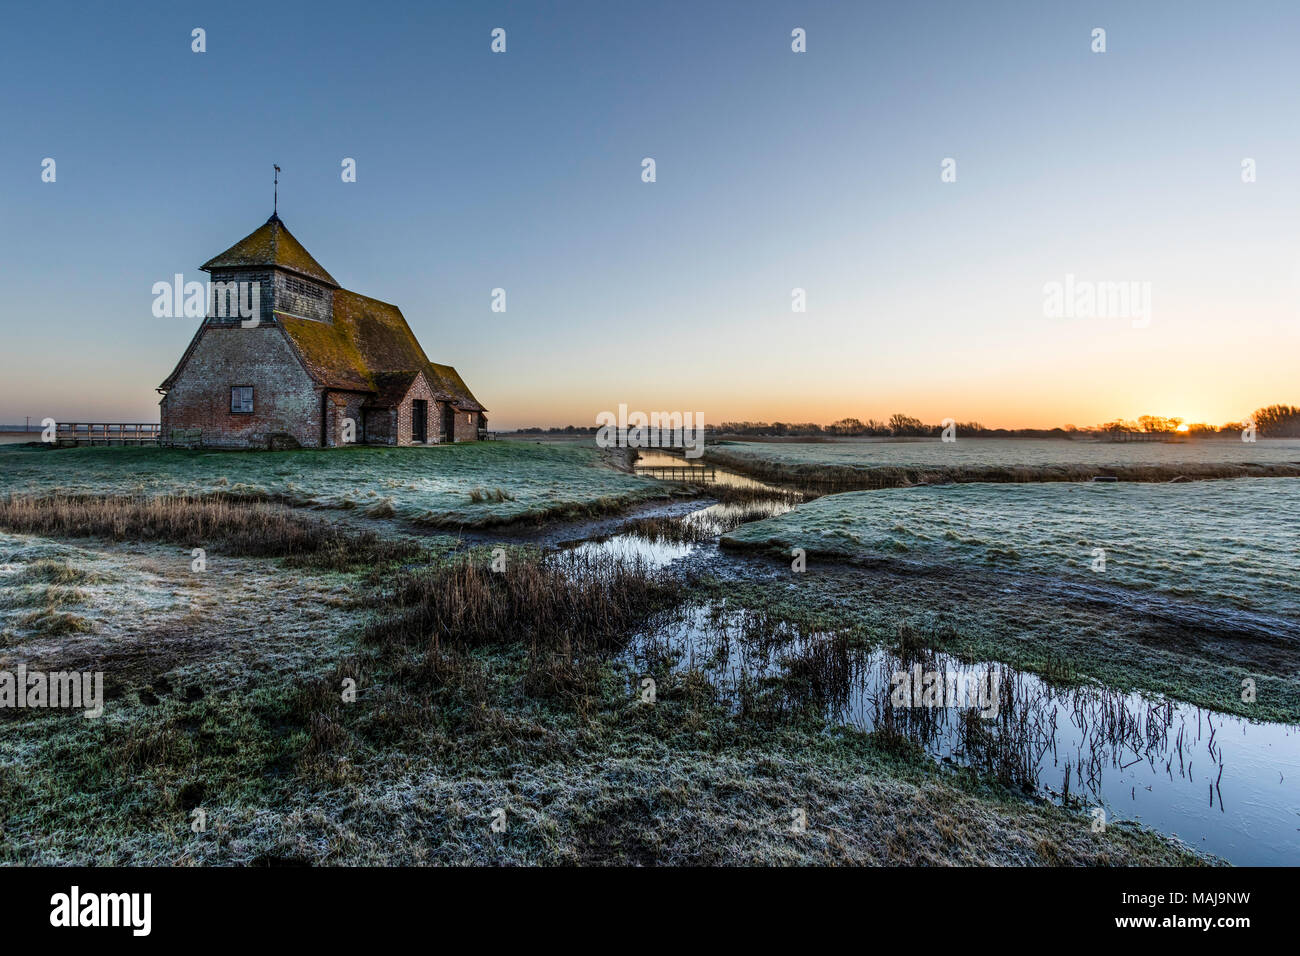 St Thomas a Becket church in the marshes. Sunrise, frost on the ground, semi-frozen ditch with reeds, church on horizon. Romney marsh, UK - Stock Image